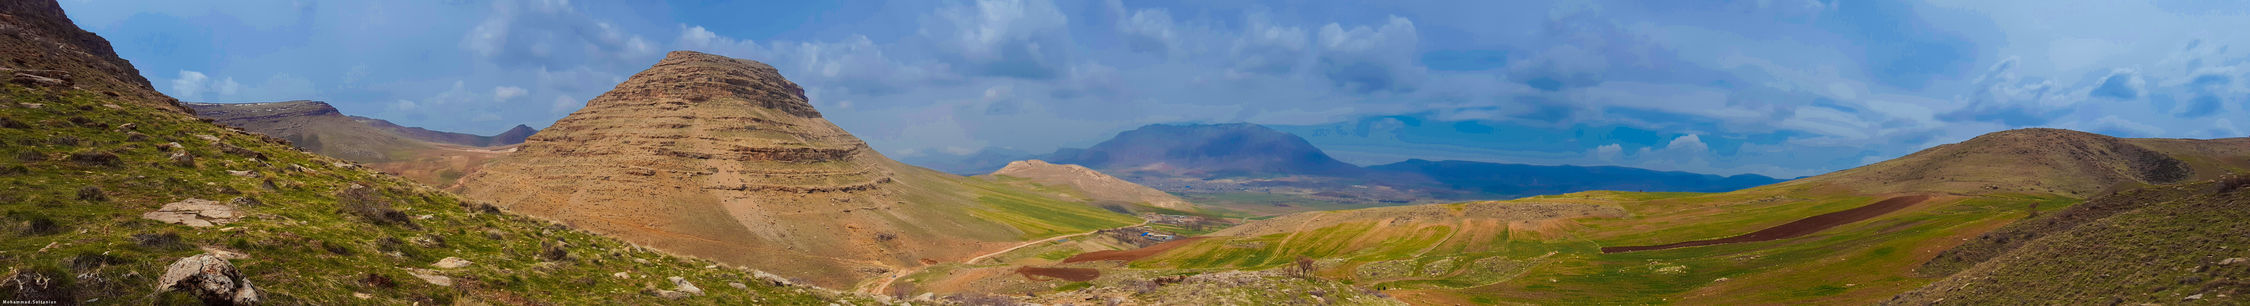 Travel Landscape Nature Cloud - Sky Sky Mountain Valley Spring Photography Samsung Samsungphotography Samsung Galaxy S6 Amateurphotography Amazing View Kermanshah